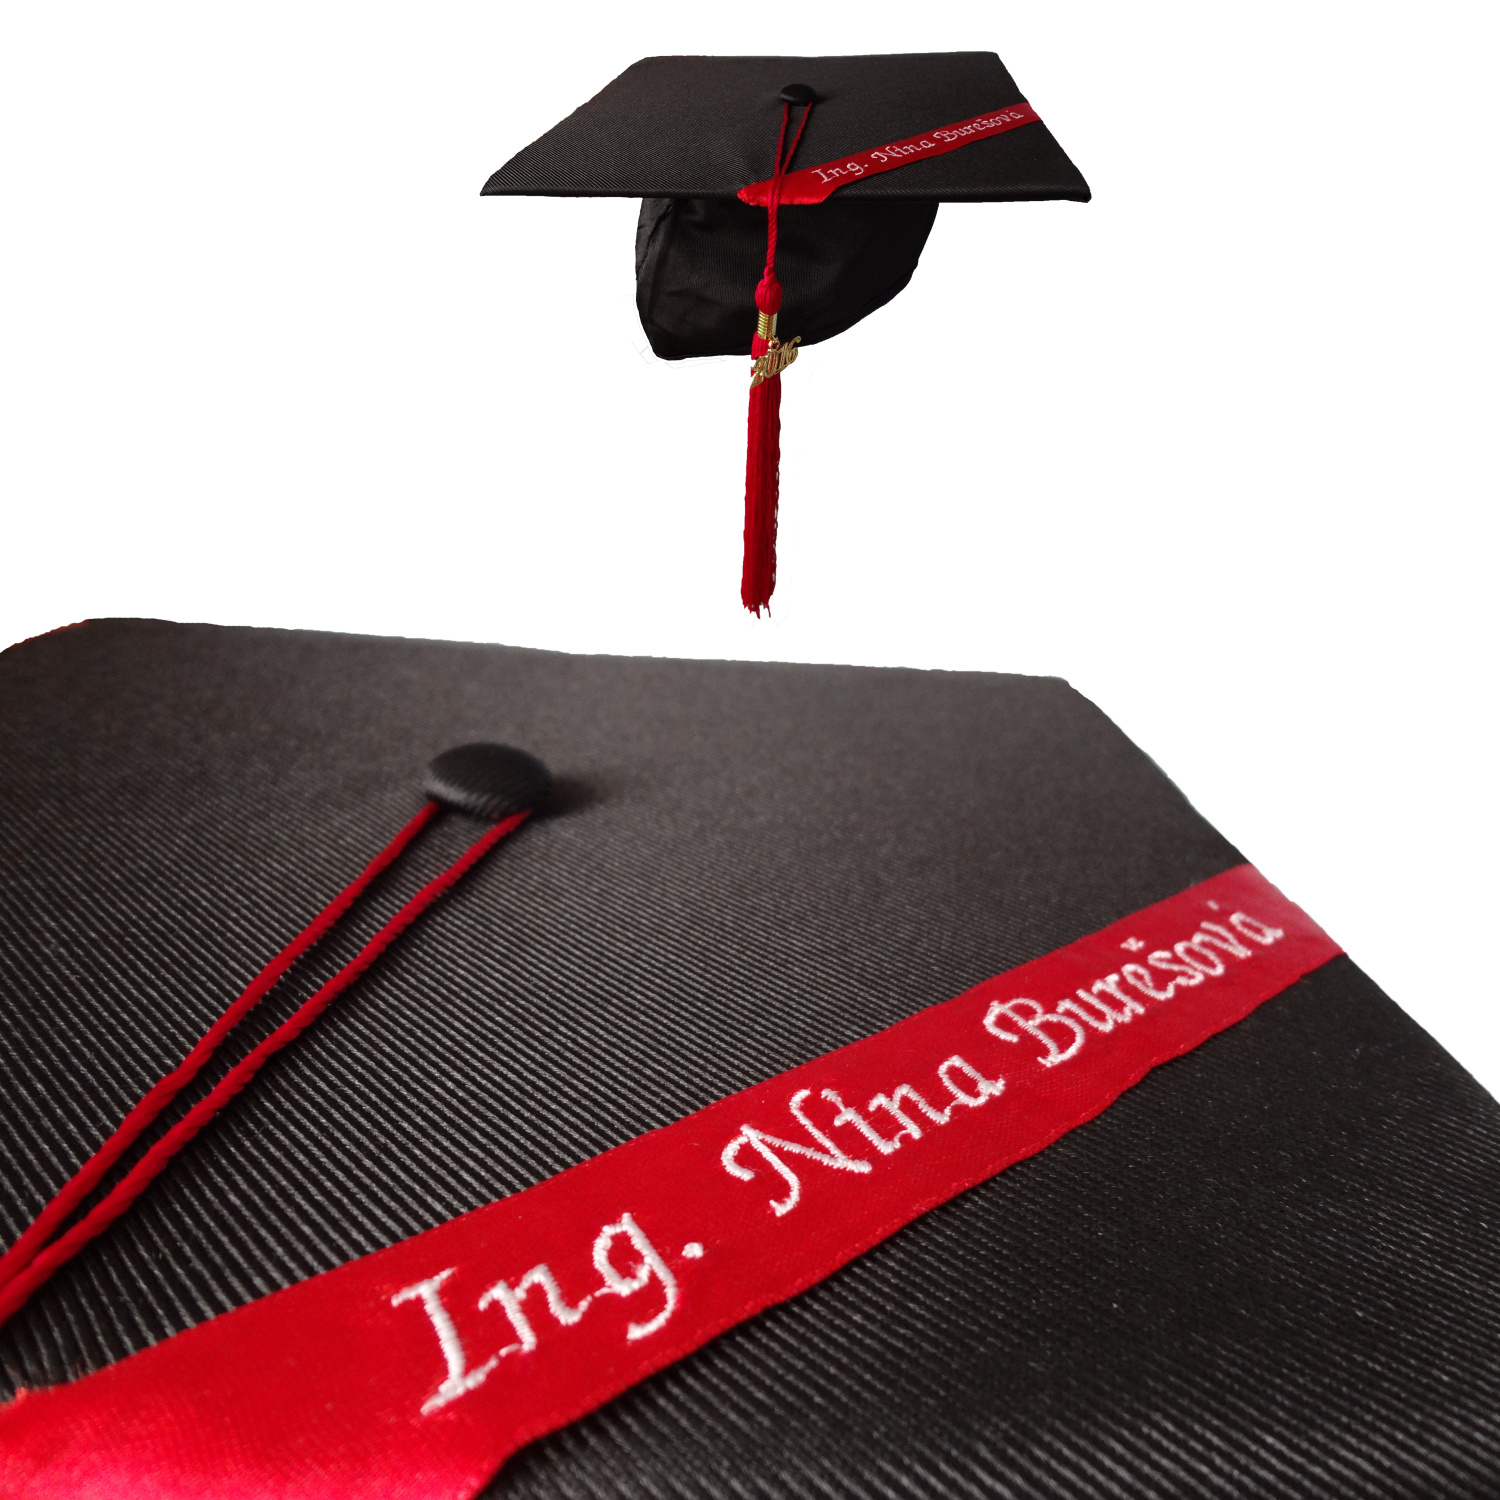 Embroidery on the graduation cap